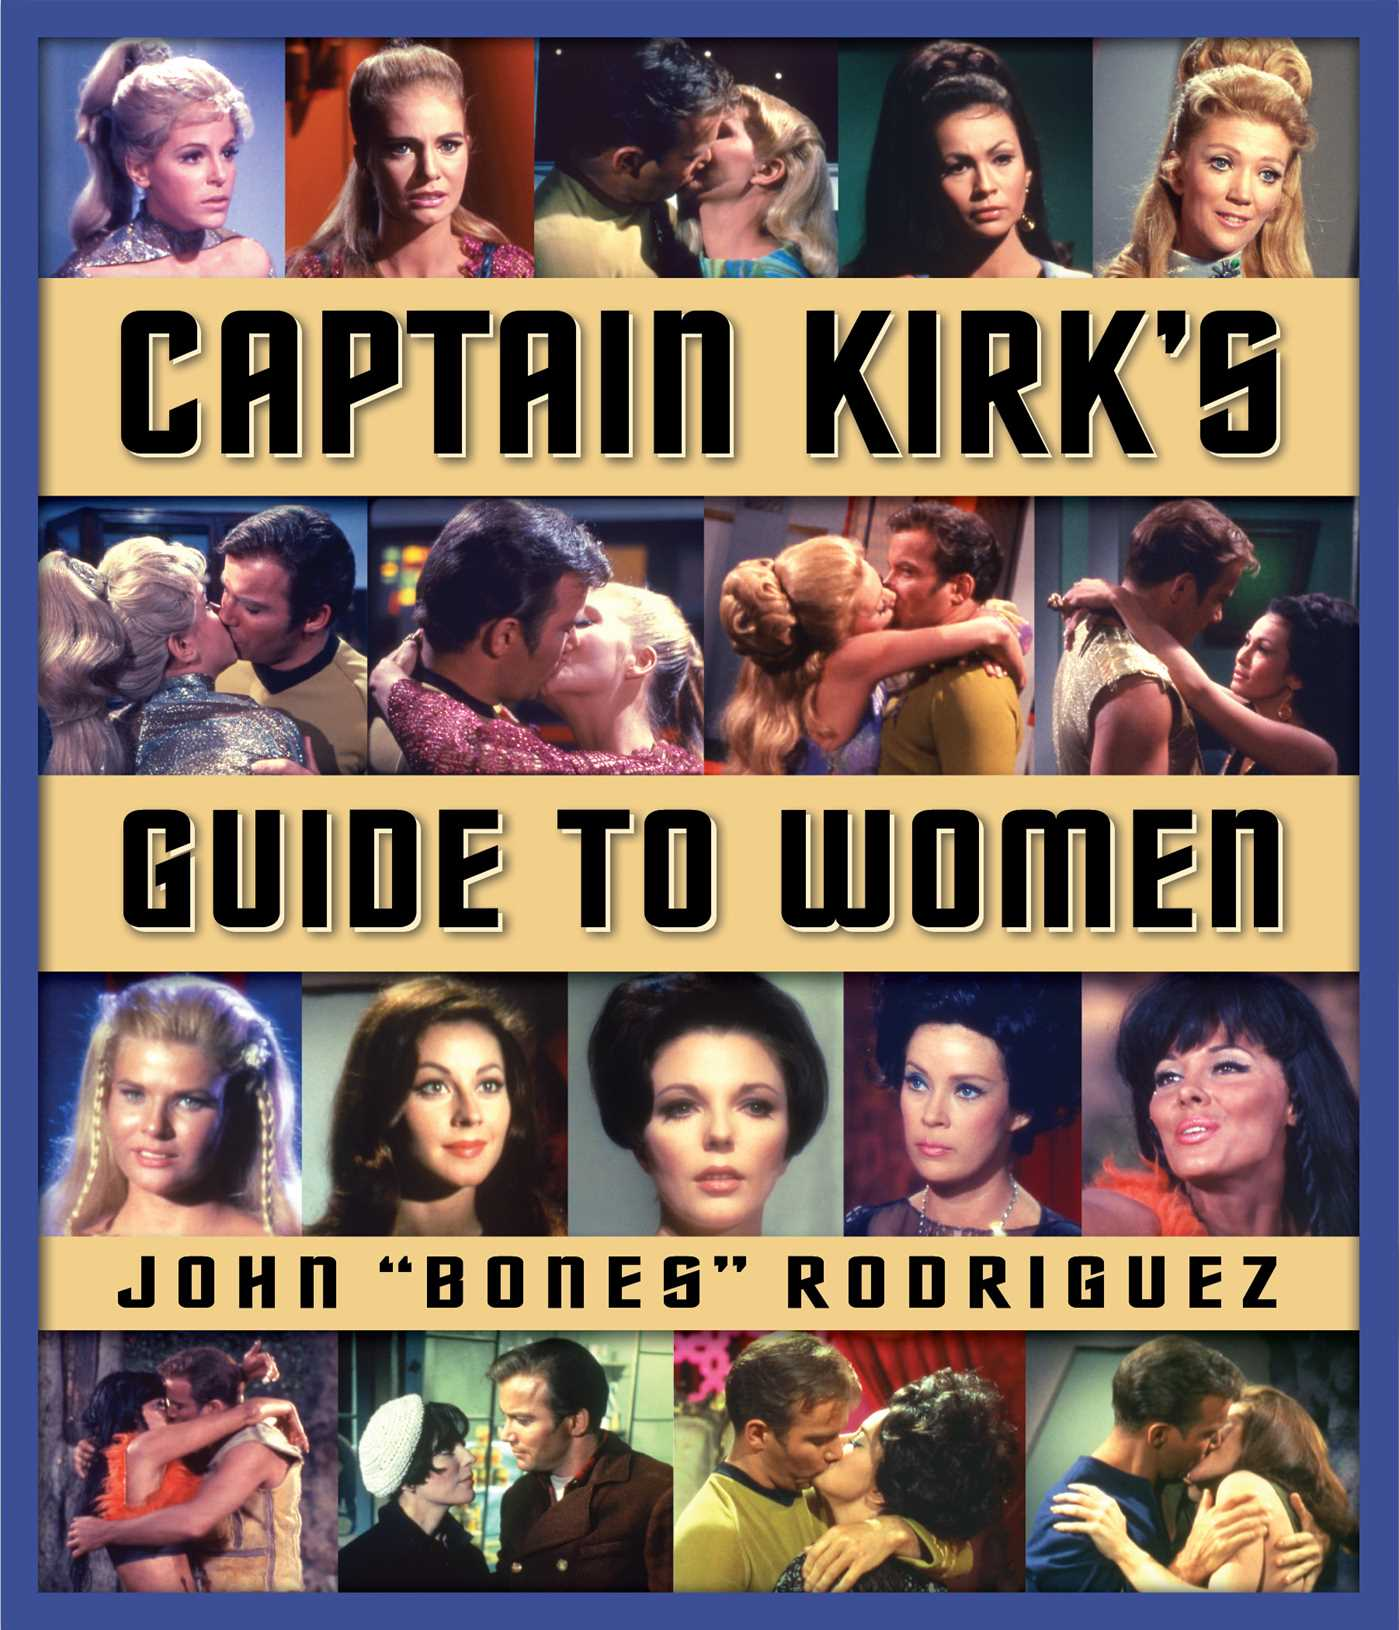 Star trek captain kirks guide to women 9781416587927 hr